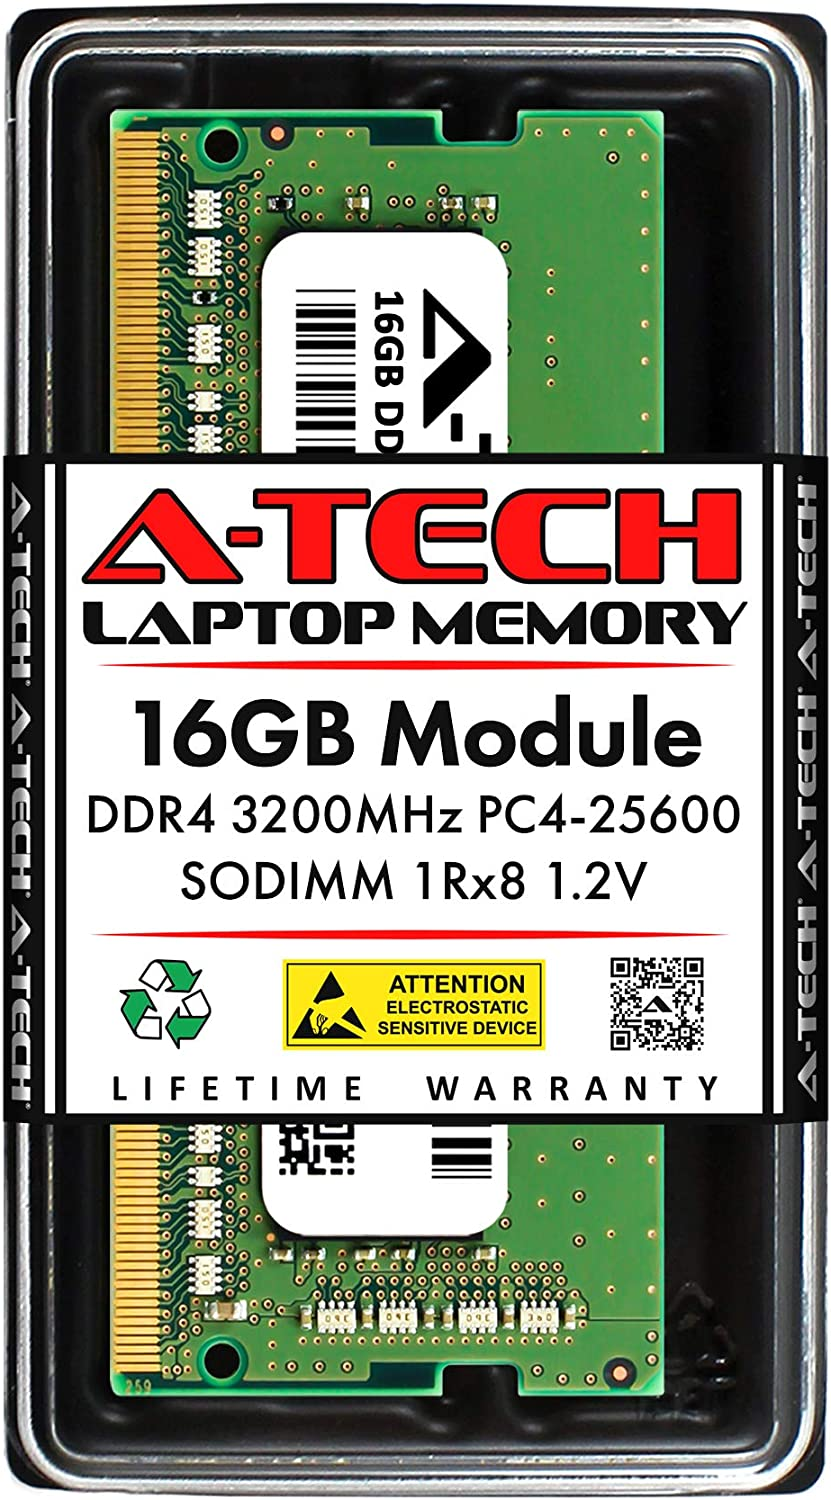 A-Tech 16GB Memory RAM for Dell Inspiron 15 5000 5505 - DDR4 3200MHz PC4-25600 Non ECC SO-DIMM 1Rx8 1.2V - Single Laptop & Notebook Upgrade Module (Replacement for AB371022)